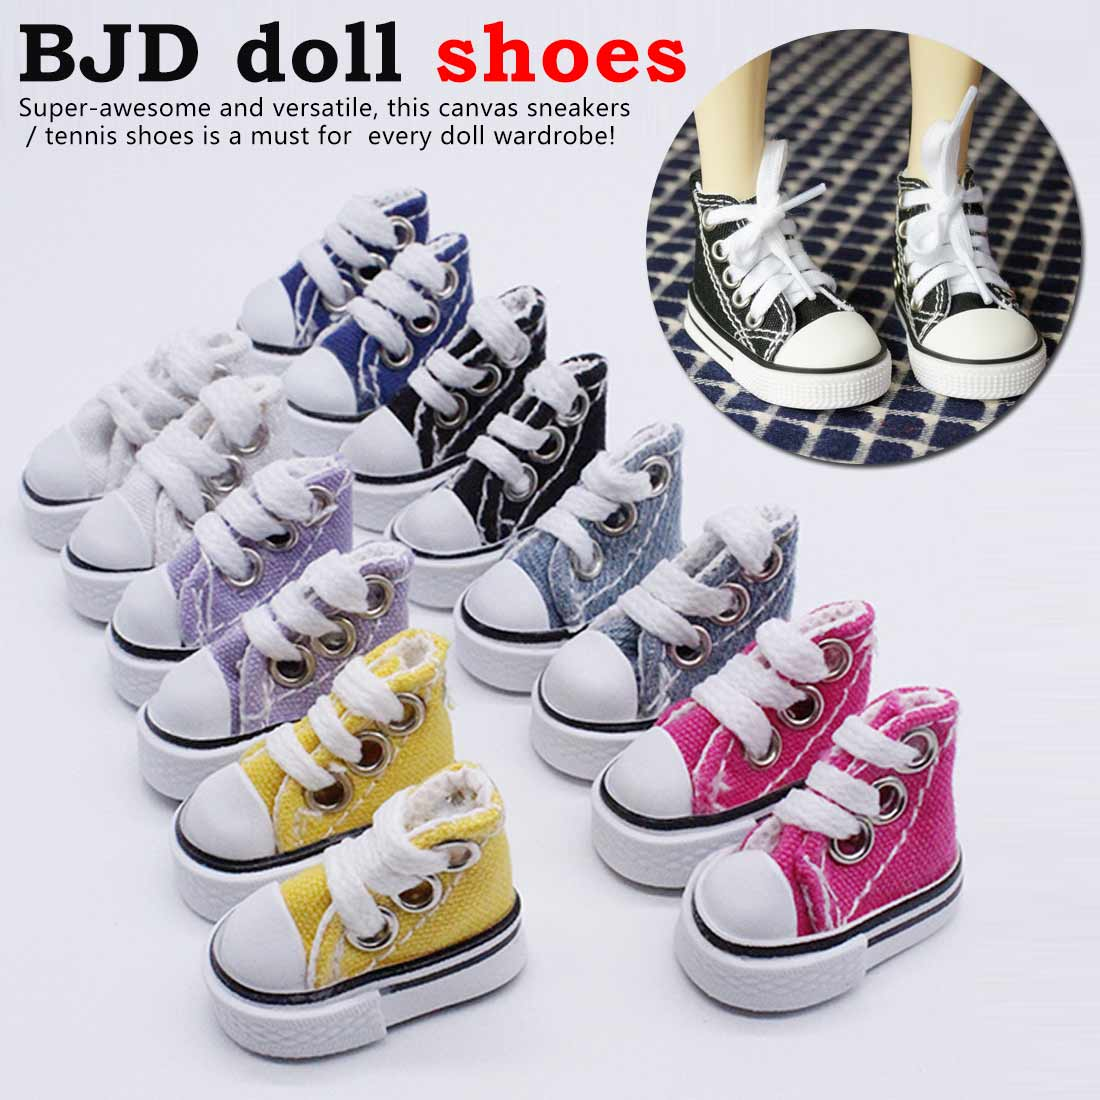 Cute Canvas Lace Up Sneakers Shoes For Dolls Canvas Sneakers Shoes Baby Toy Canvas Doll Sneakers